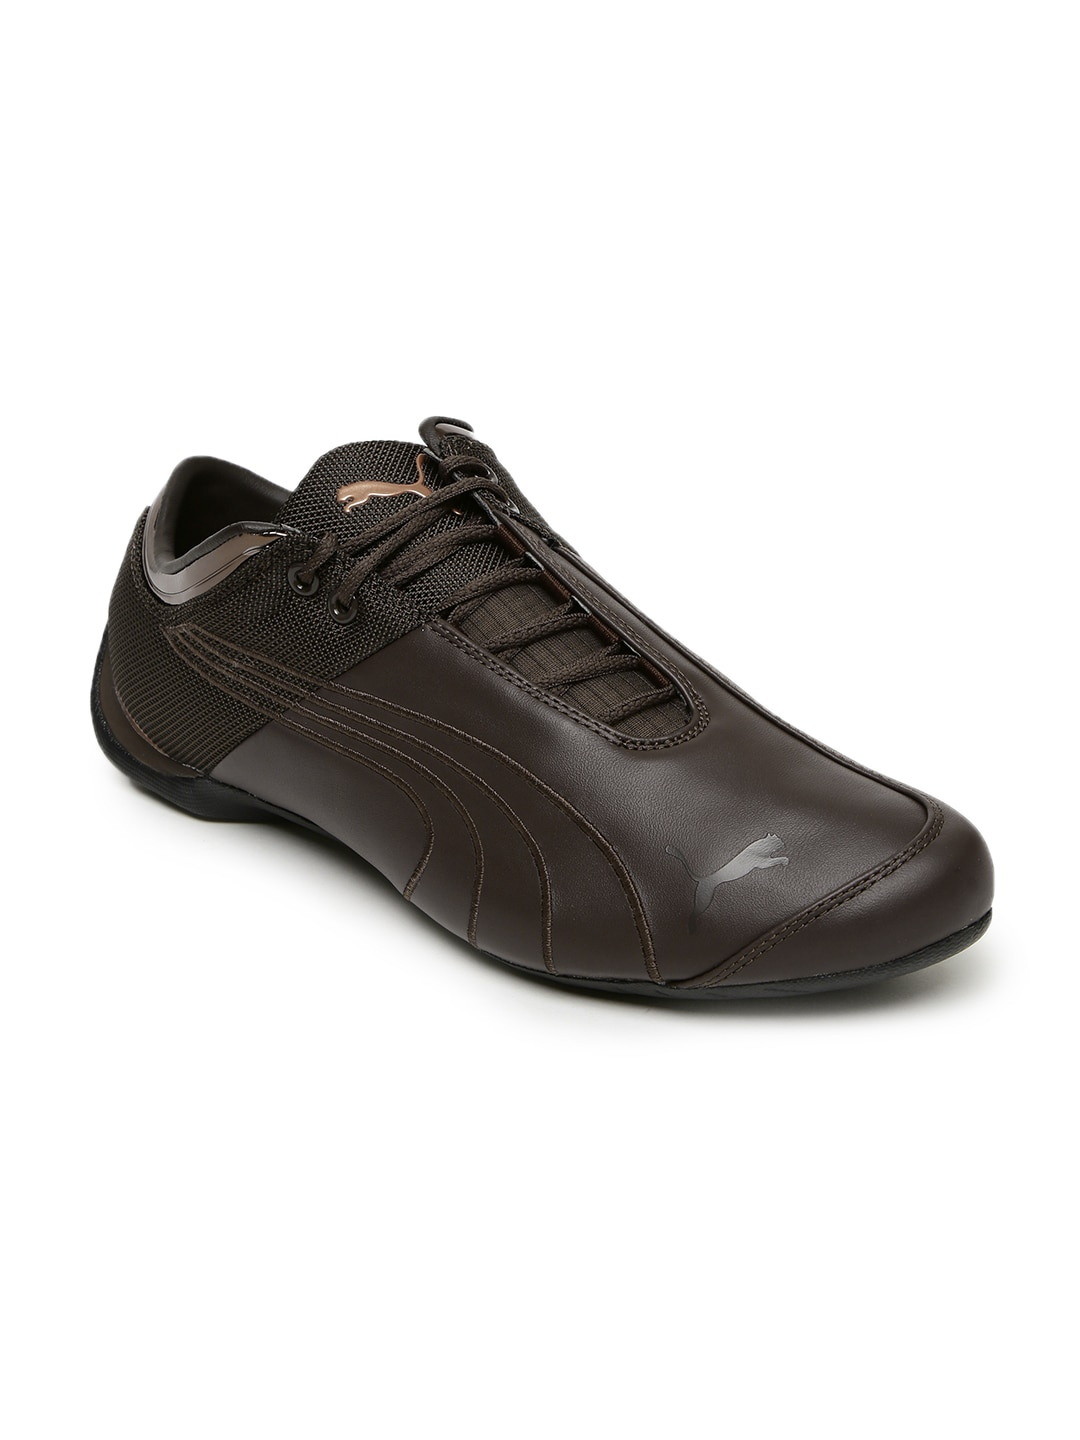 brown casual shoes consumabulbs co uk